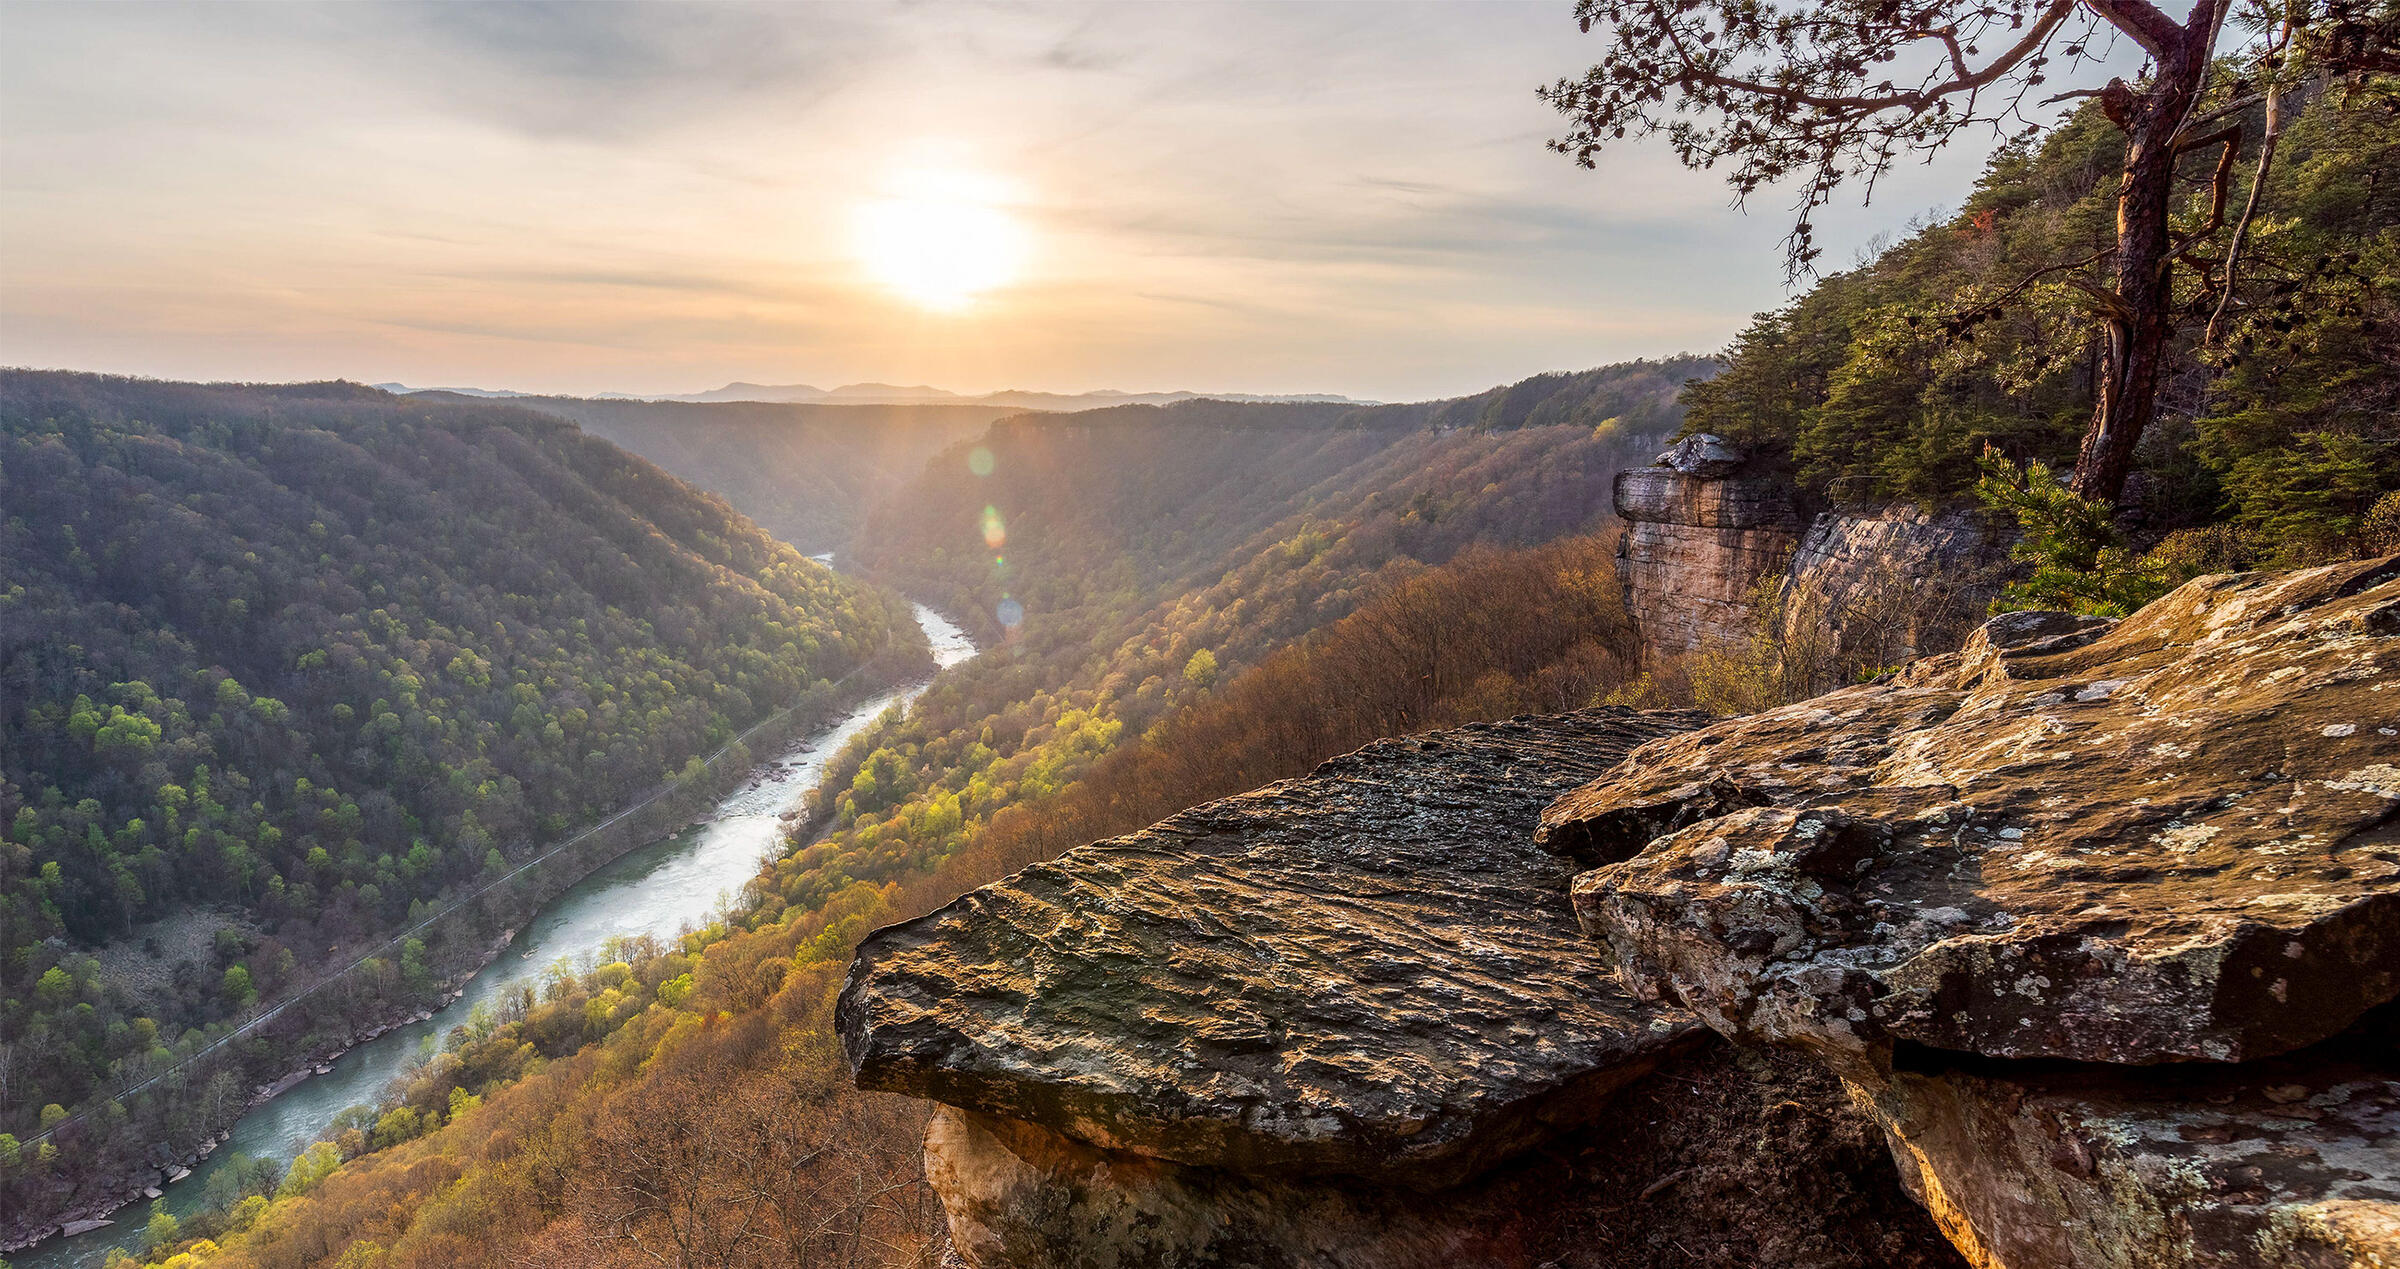 The sun sets on an early spring evening in New River Gorge National Park, West Virginia. Jesse Thornton/Alamy